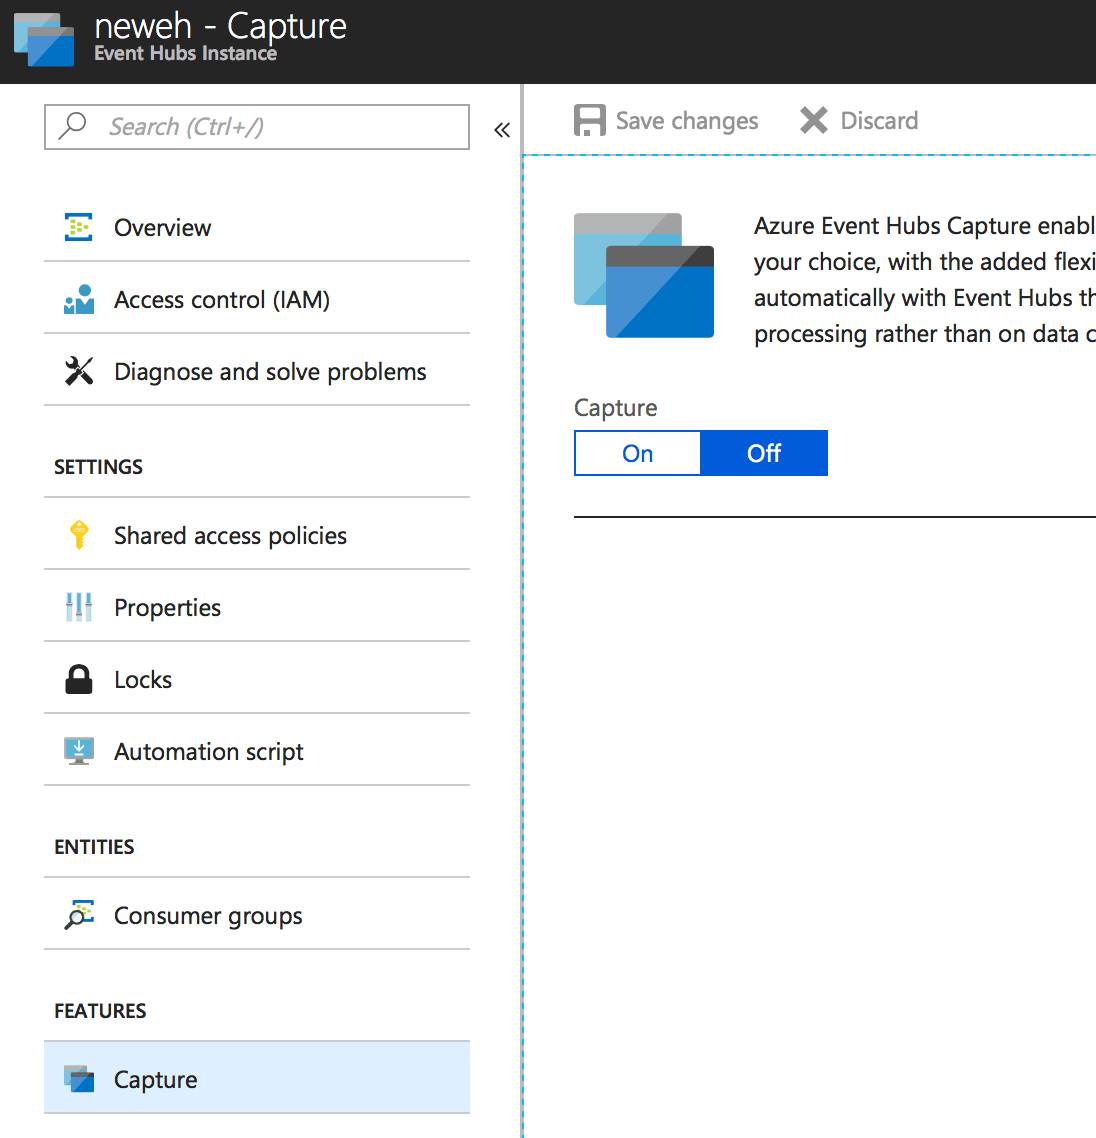 Automatically move data from Azure Event Hubs to Azure Blob Storage